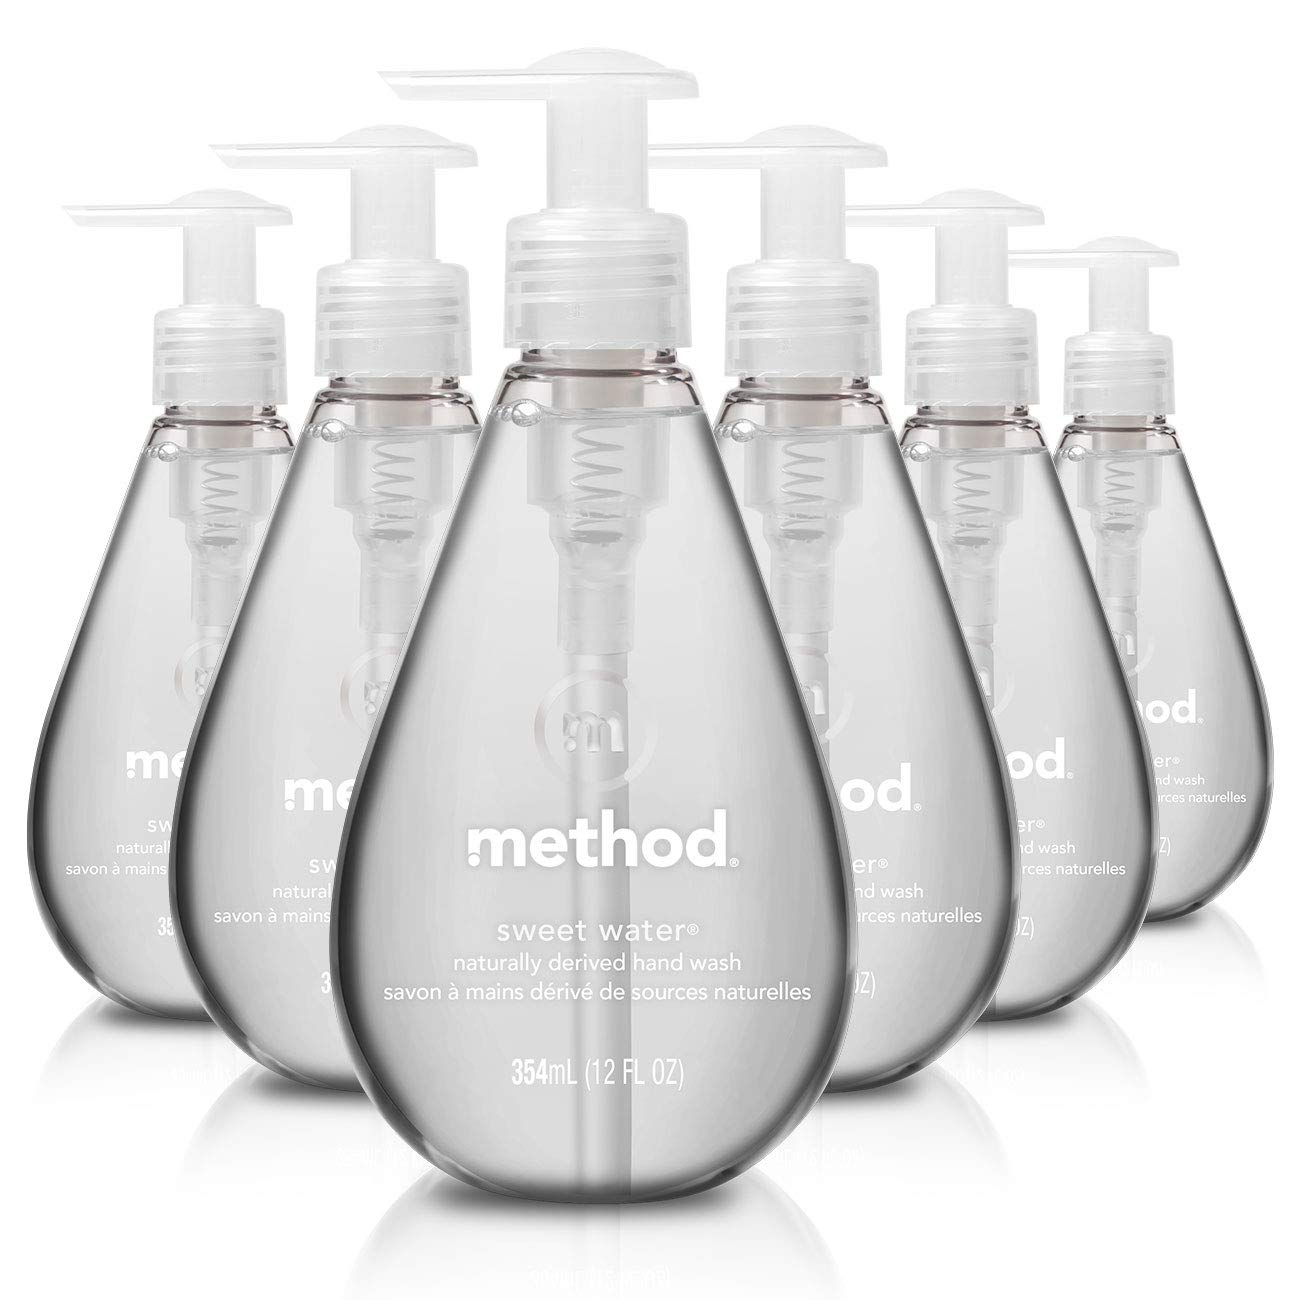 6-Pack 12 oz. Method Gel Hand Soap (Sweet Water or Waterfall) for $11.91 w/ S&S